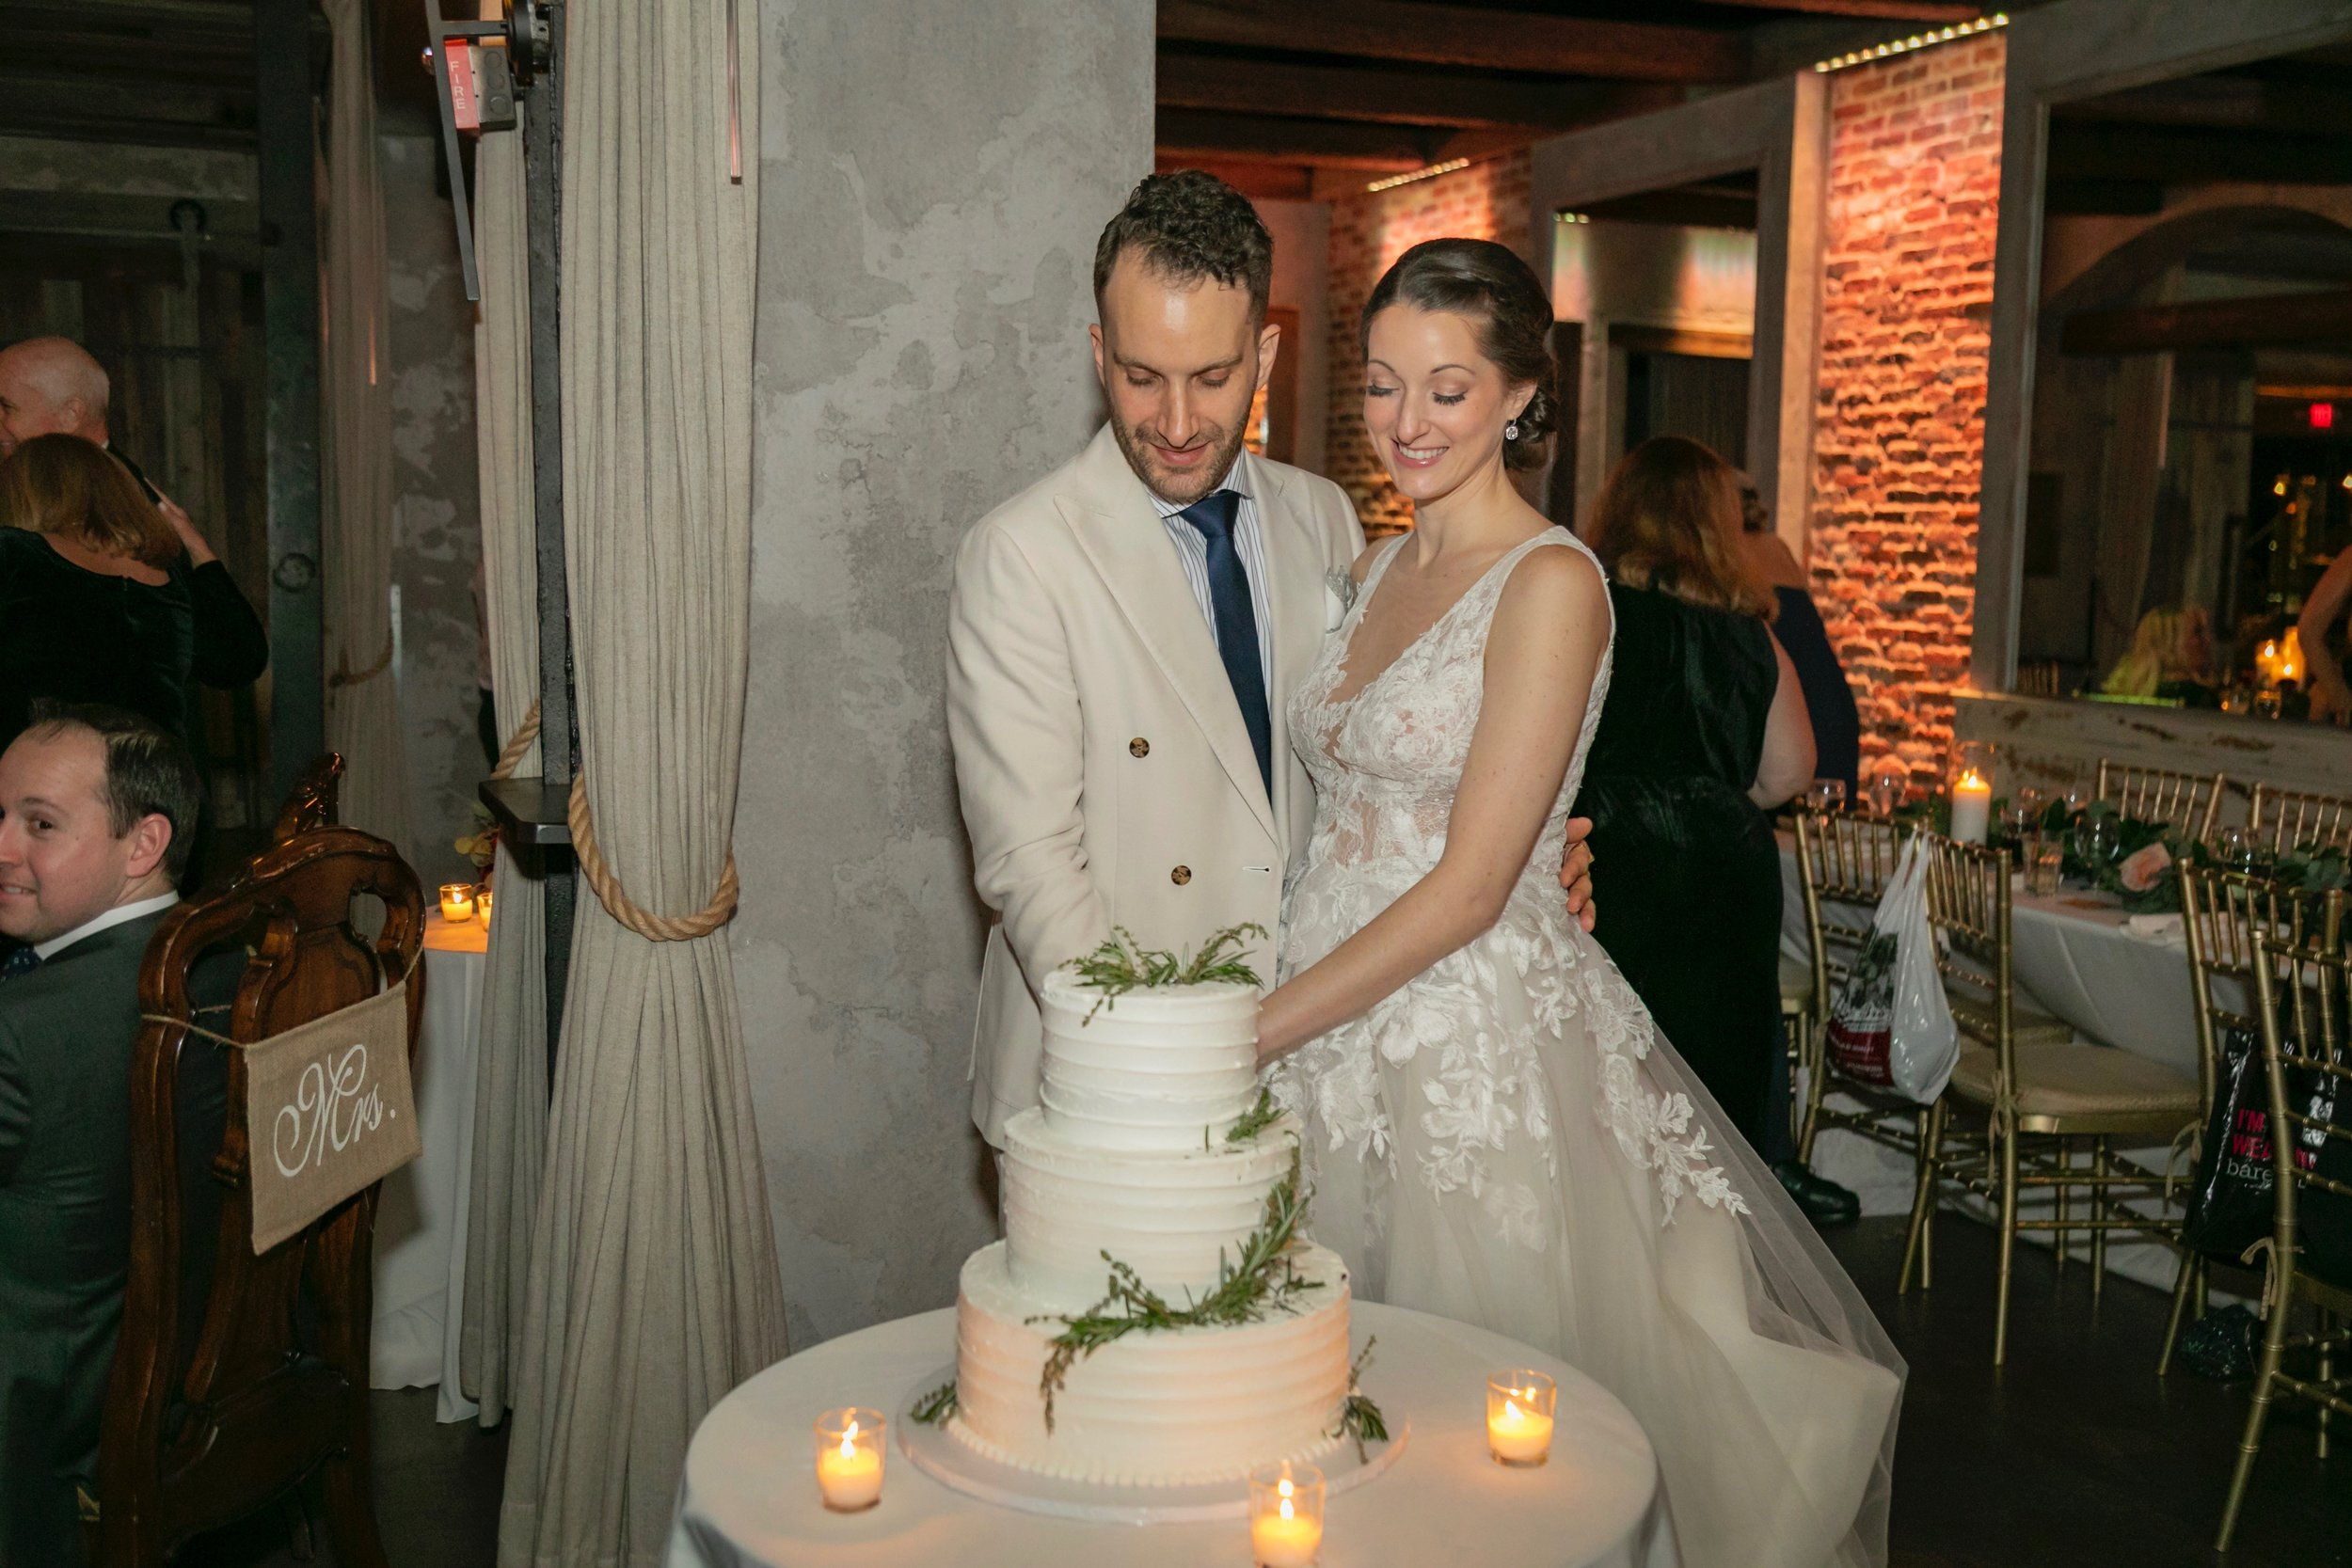 Colleen & Filippo wedding at The Loft by Bridge View by Unveiled-Weddings.com #TheLoftByBridgeView #LongIslandWedding